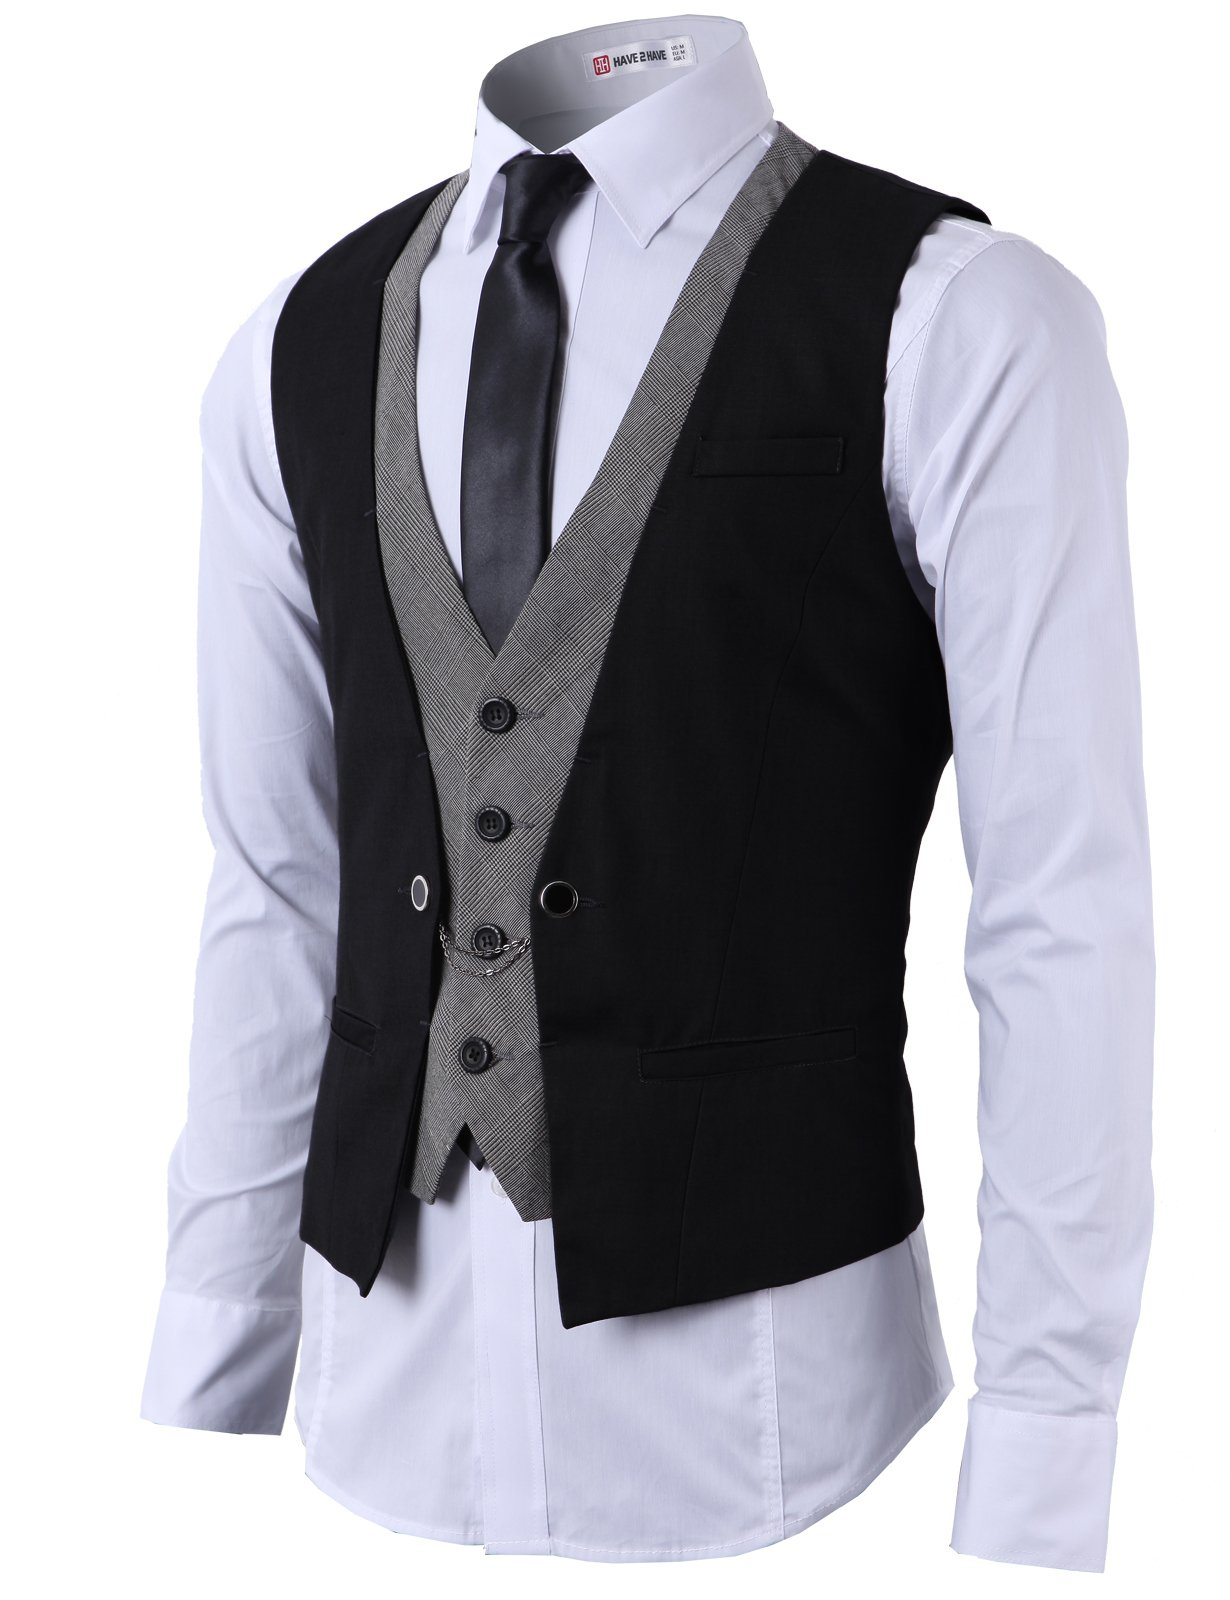 H2H Mens Fashion Business Suit Layered Vest With Chain Rings BLACK(CMOV01), US M (Asia L)